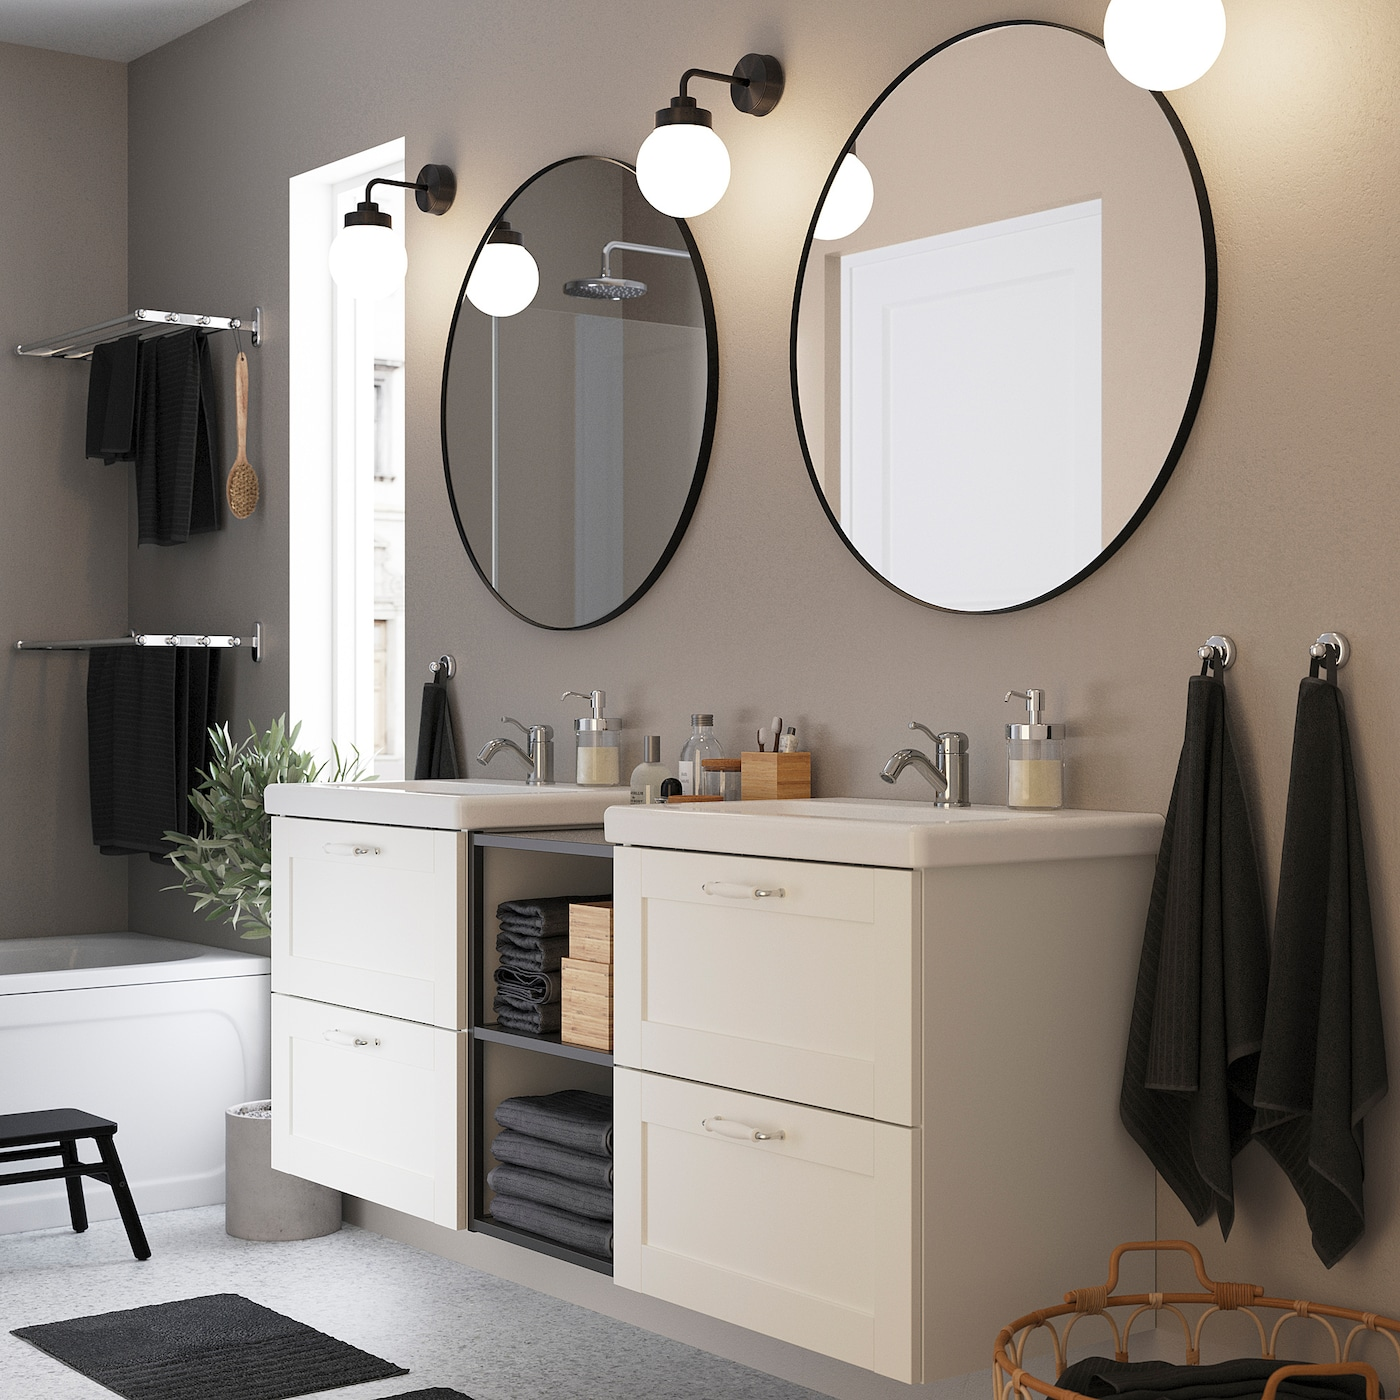 ENHET / TVÄLLEN Bathroom furniture, set of 15, white frame/anthracite Lillsvan tap, 164x43x65 cm